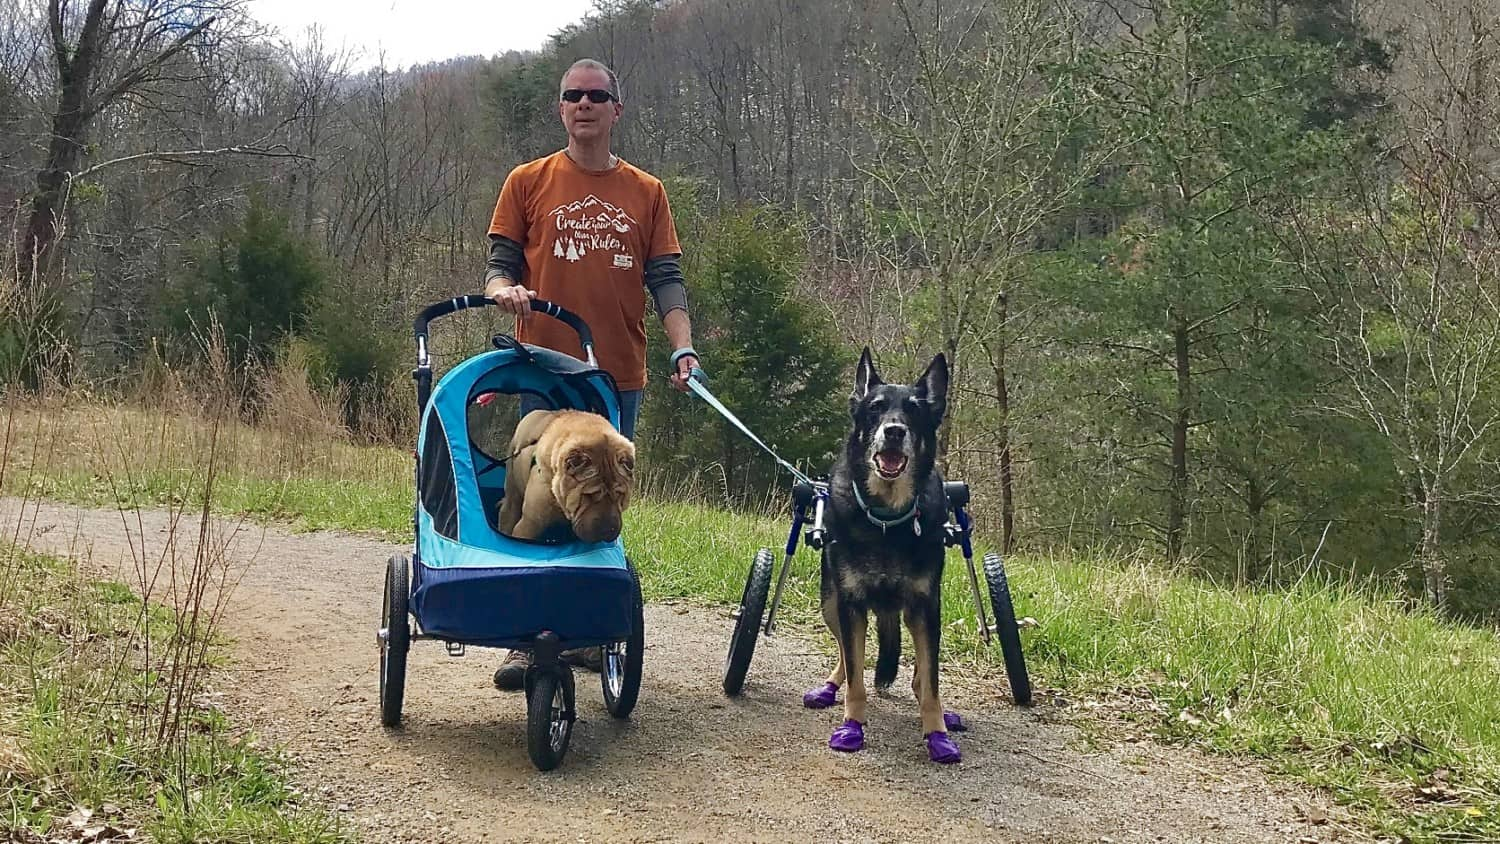 Man, dog in dog stroller, dog in wheelchair on a pet friendly trail